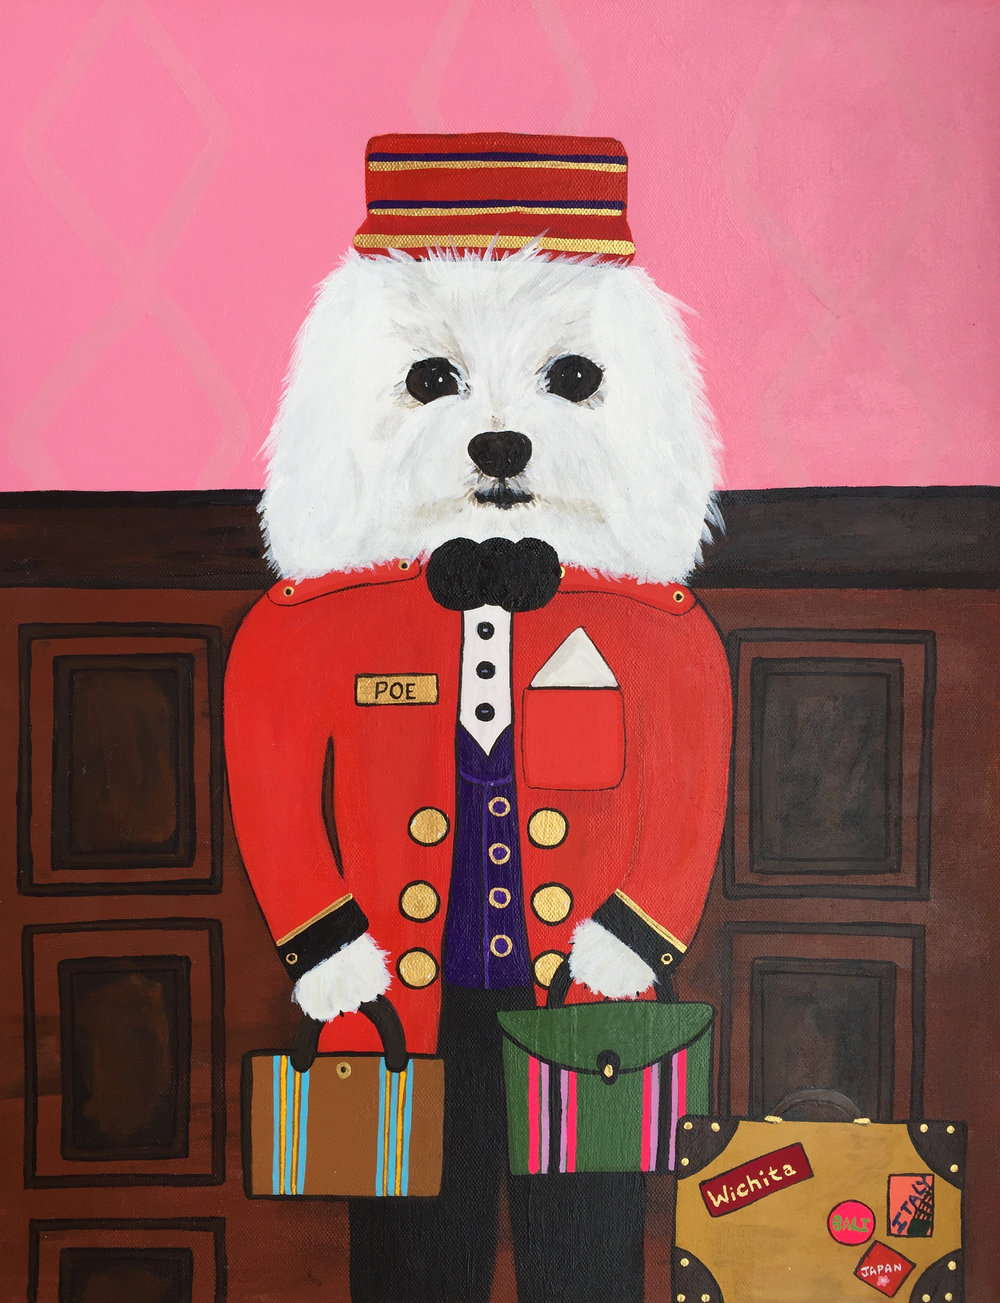 Poe Bell Boy - For Frances Valentine inspired by Katy's pup Poe.Available on francesvalentine.com